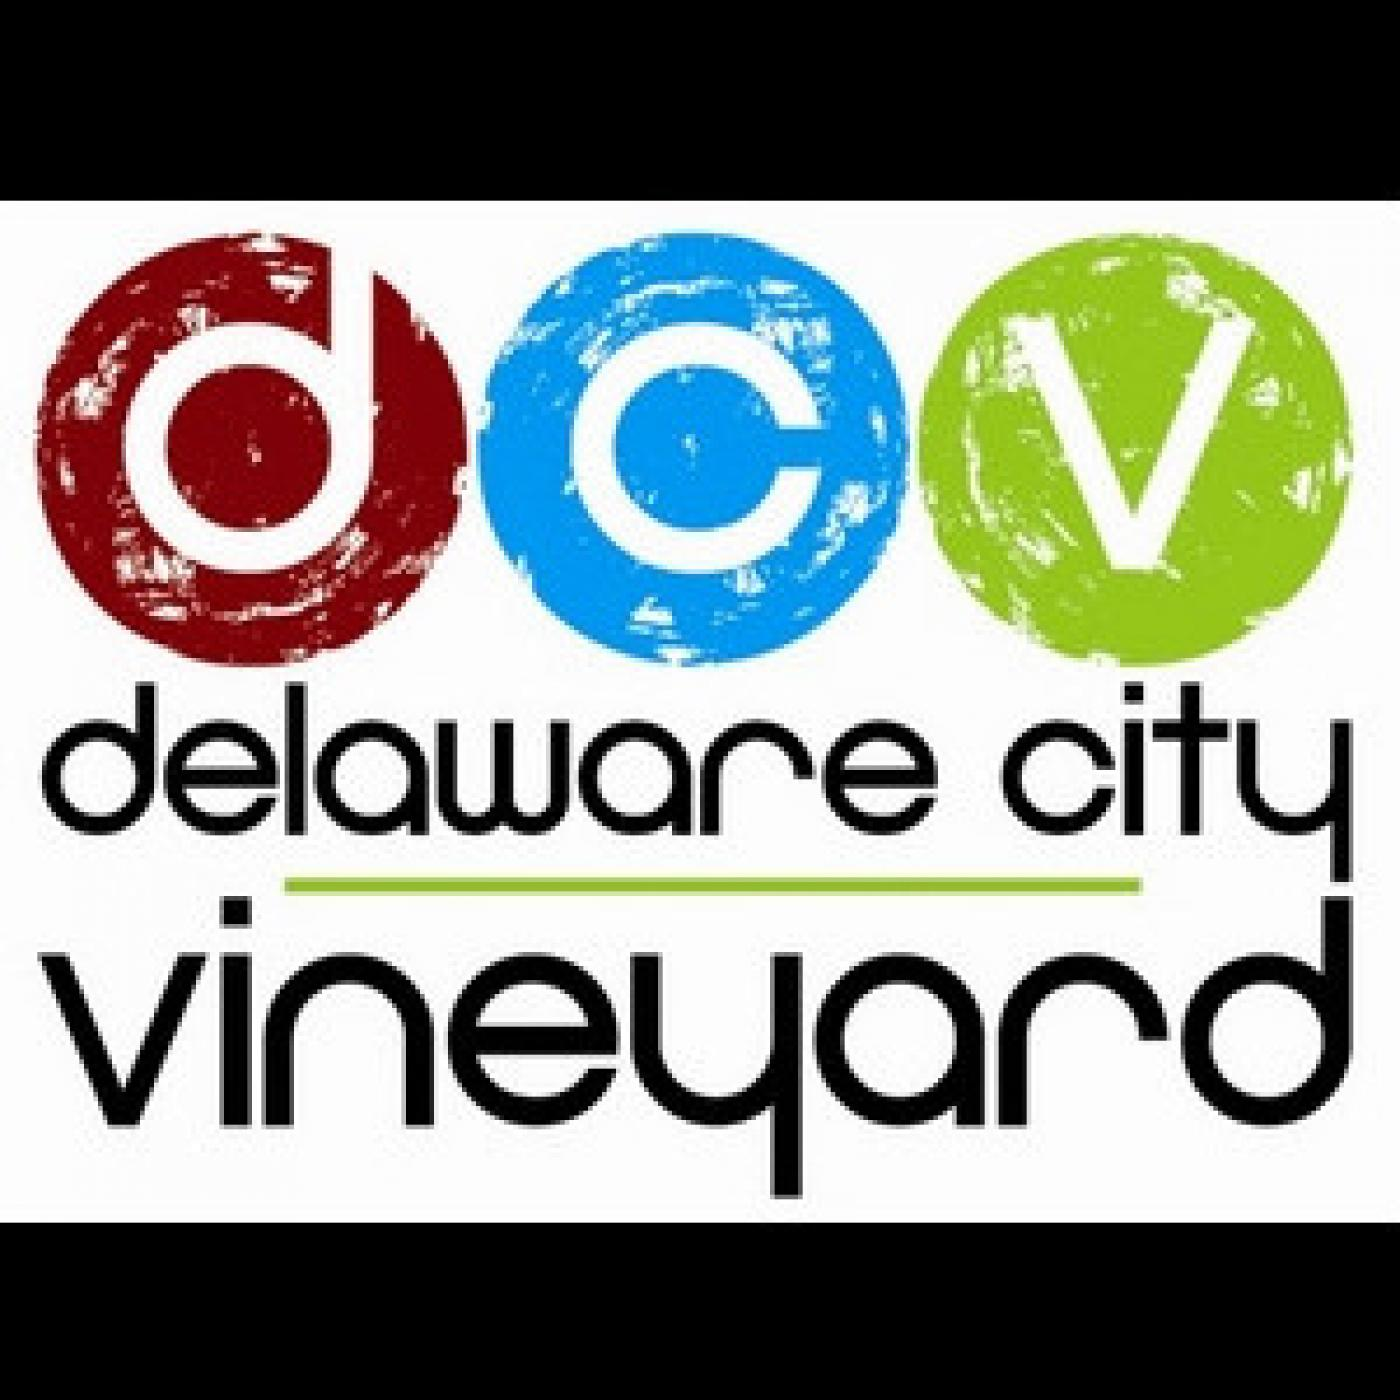 Delaware City Vineyard